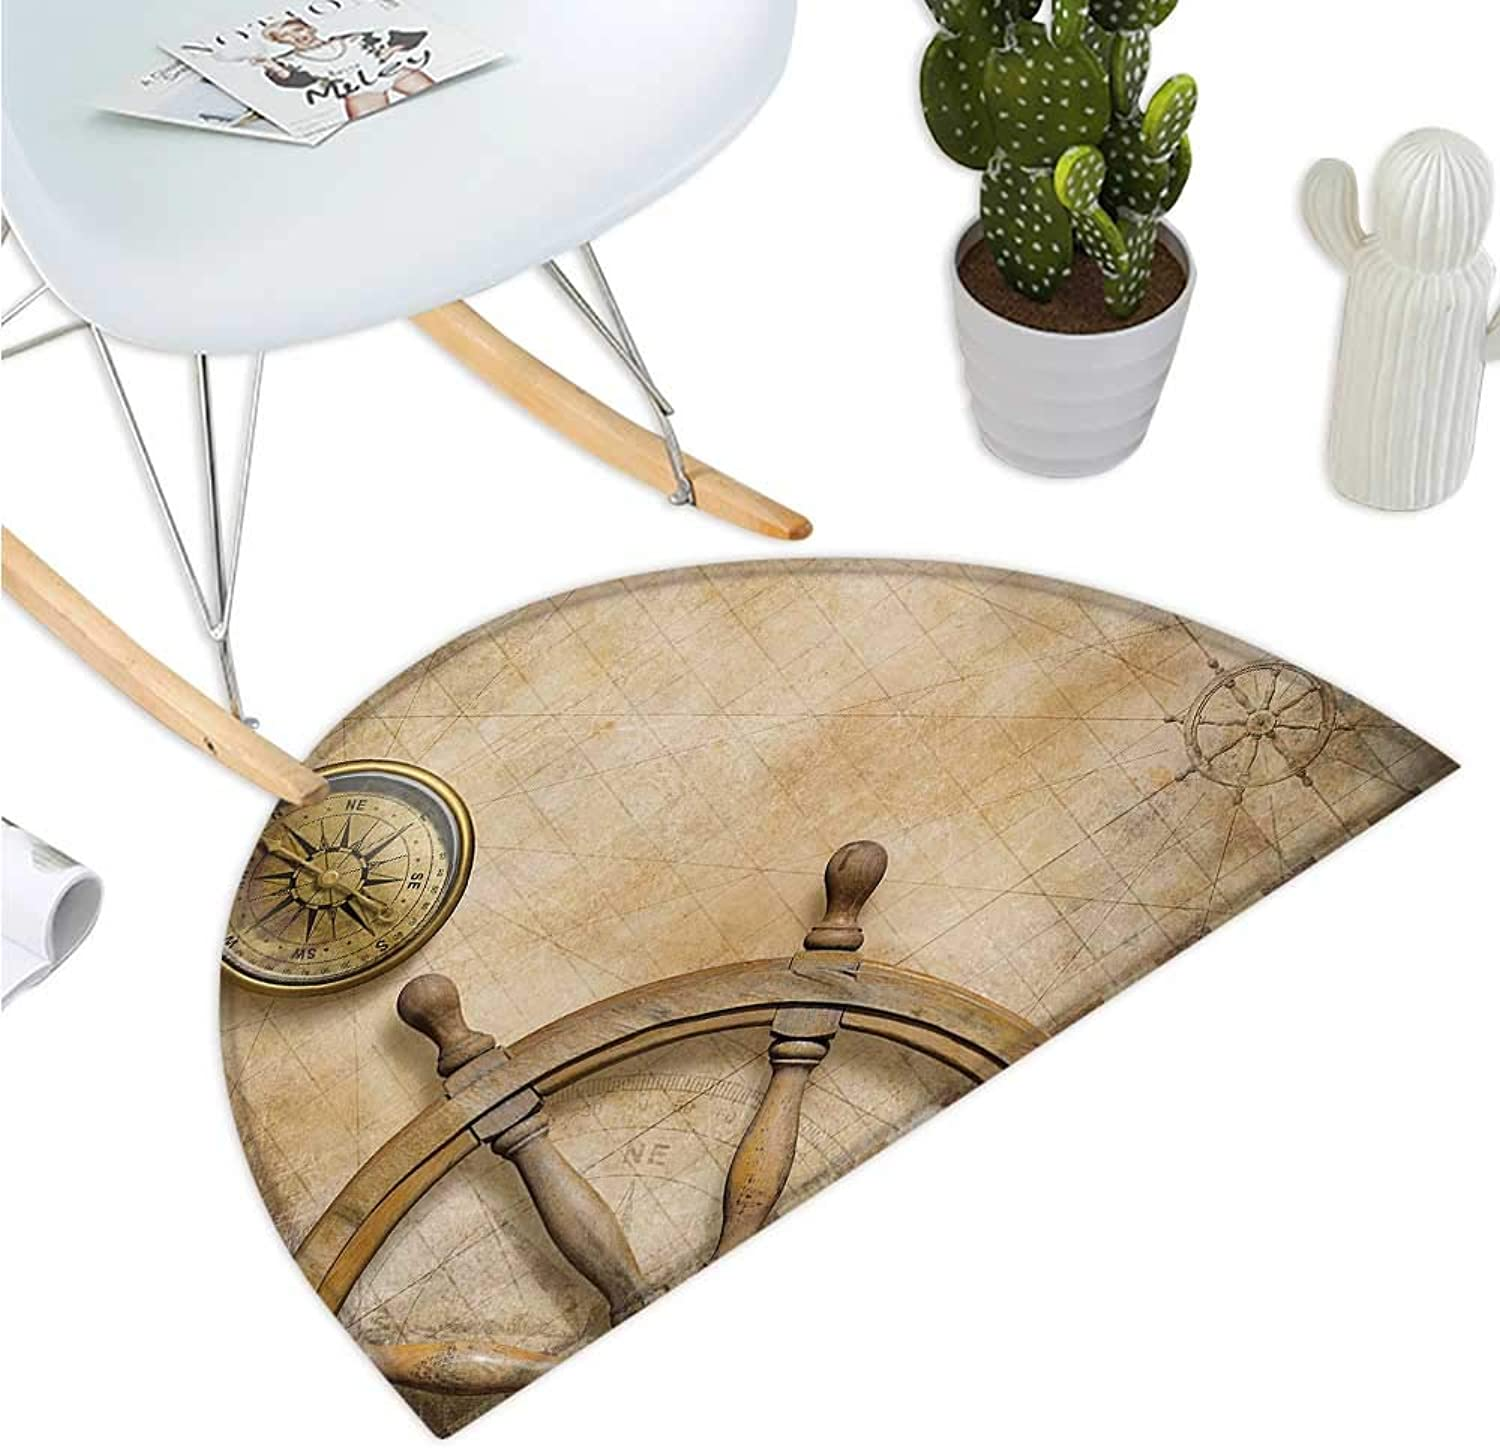 Nautical Semicircular Cushion Steering Wheel and Compass Vintage Map Setting Captains Chamber Finding Treasure Print Bathroom Mat H 51.1  xD 76.7  Beige